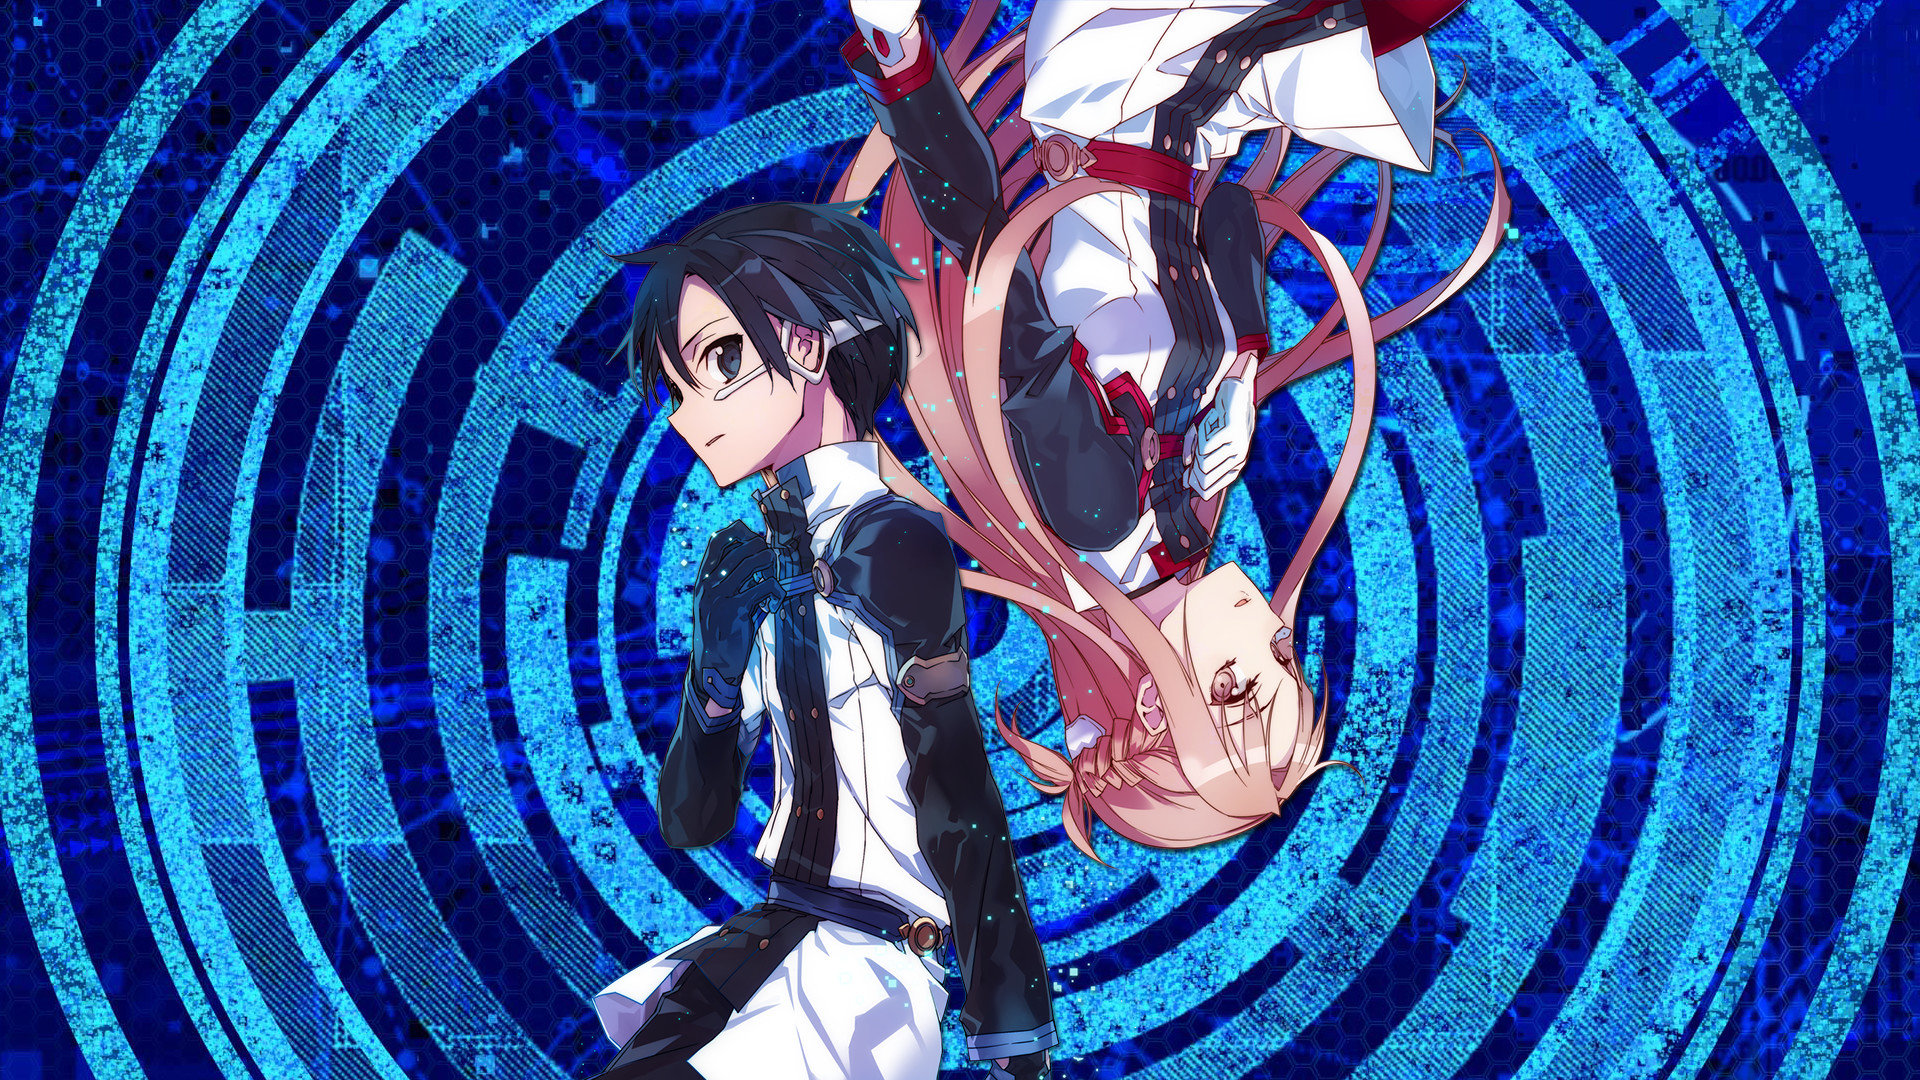 Sword Art Online Sao Wallpapers 1920x1080 Full Hd 1080p